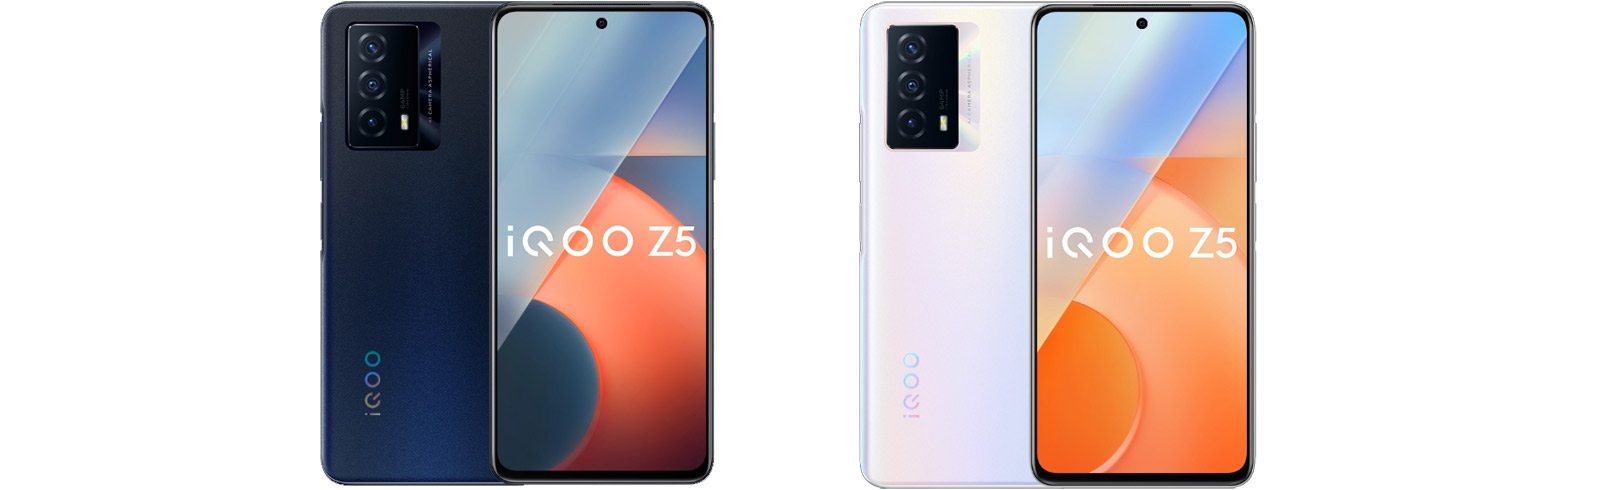 """Vivo unveils the iQOO Z5 in China with a 6.67"""" FHD+ IPS display, Snapdragon 778G chipset"""